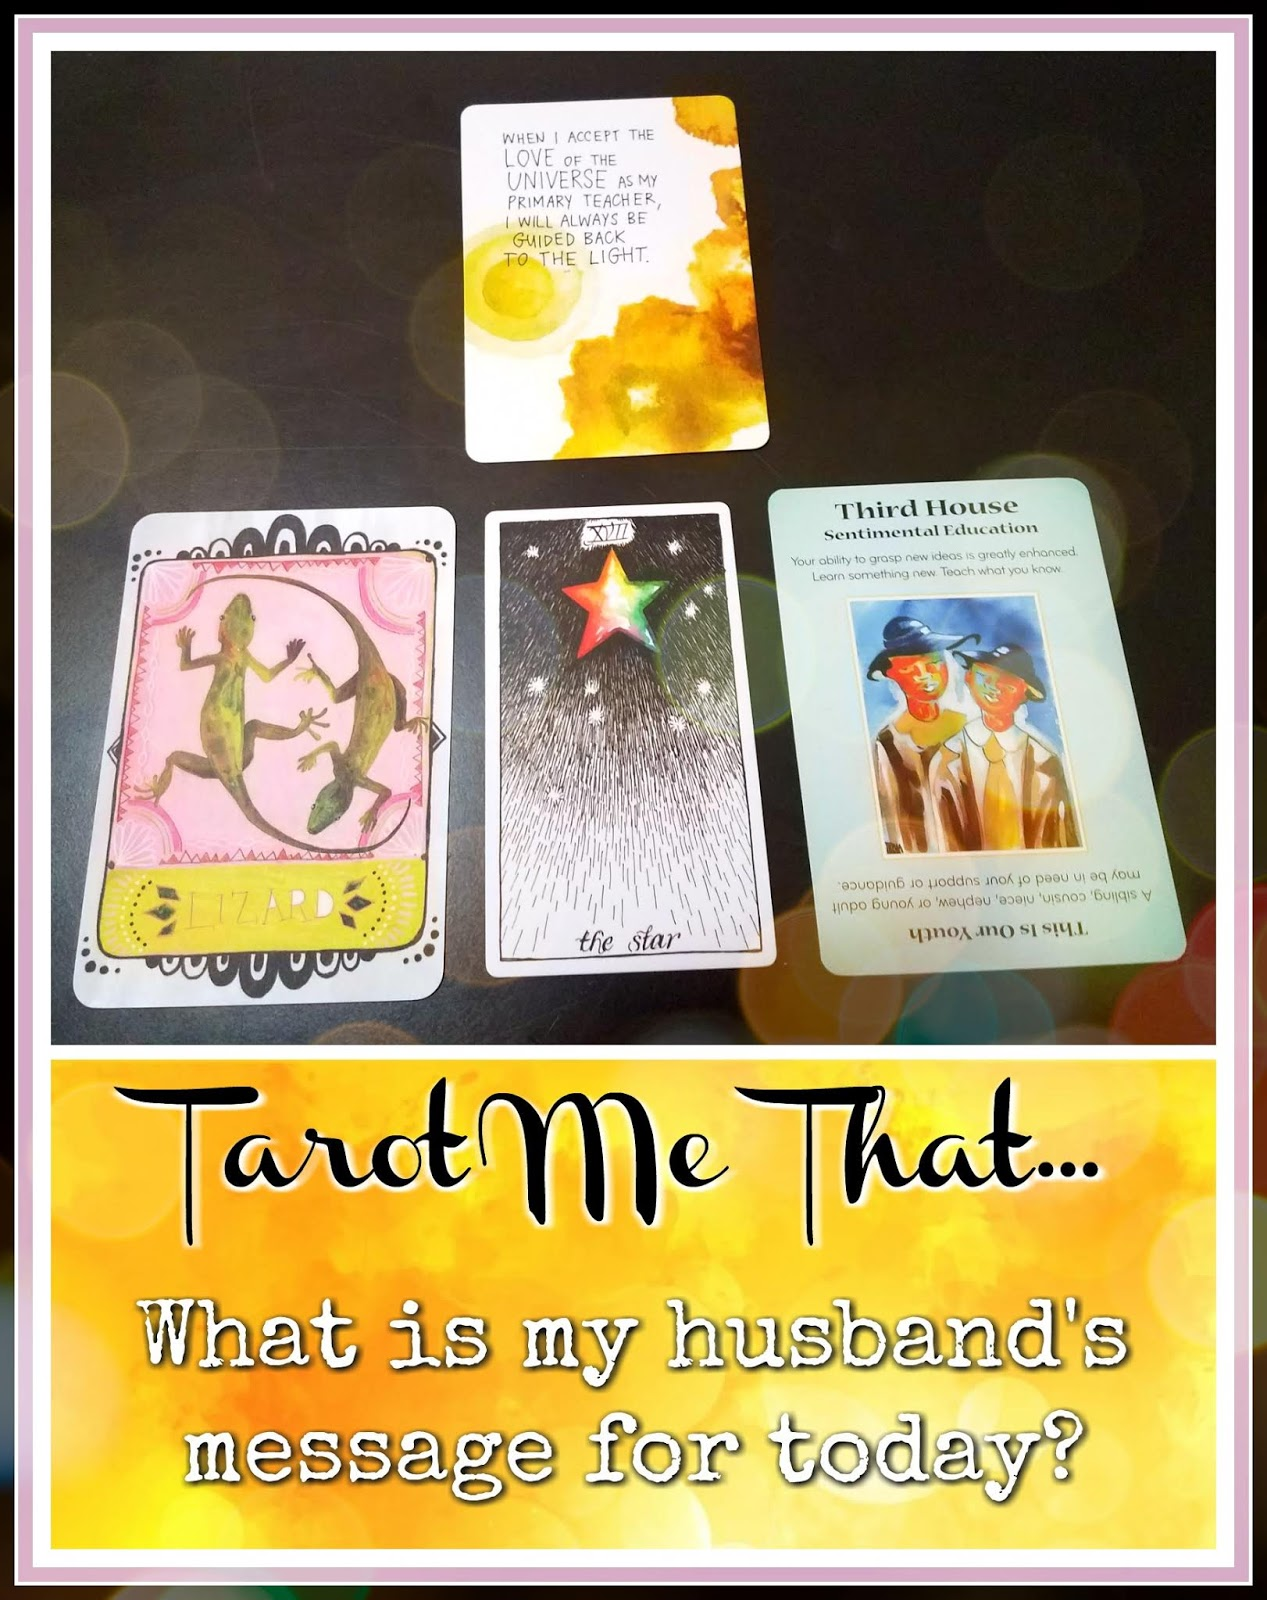 Daily Message: September 17, 2018 - TAROT ME THAT